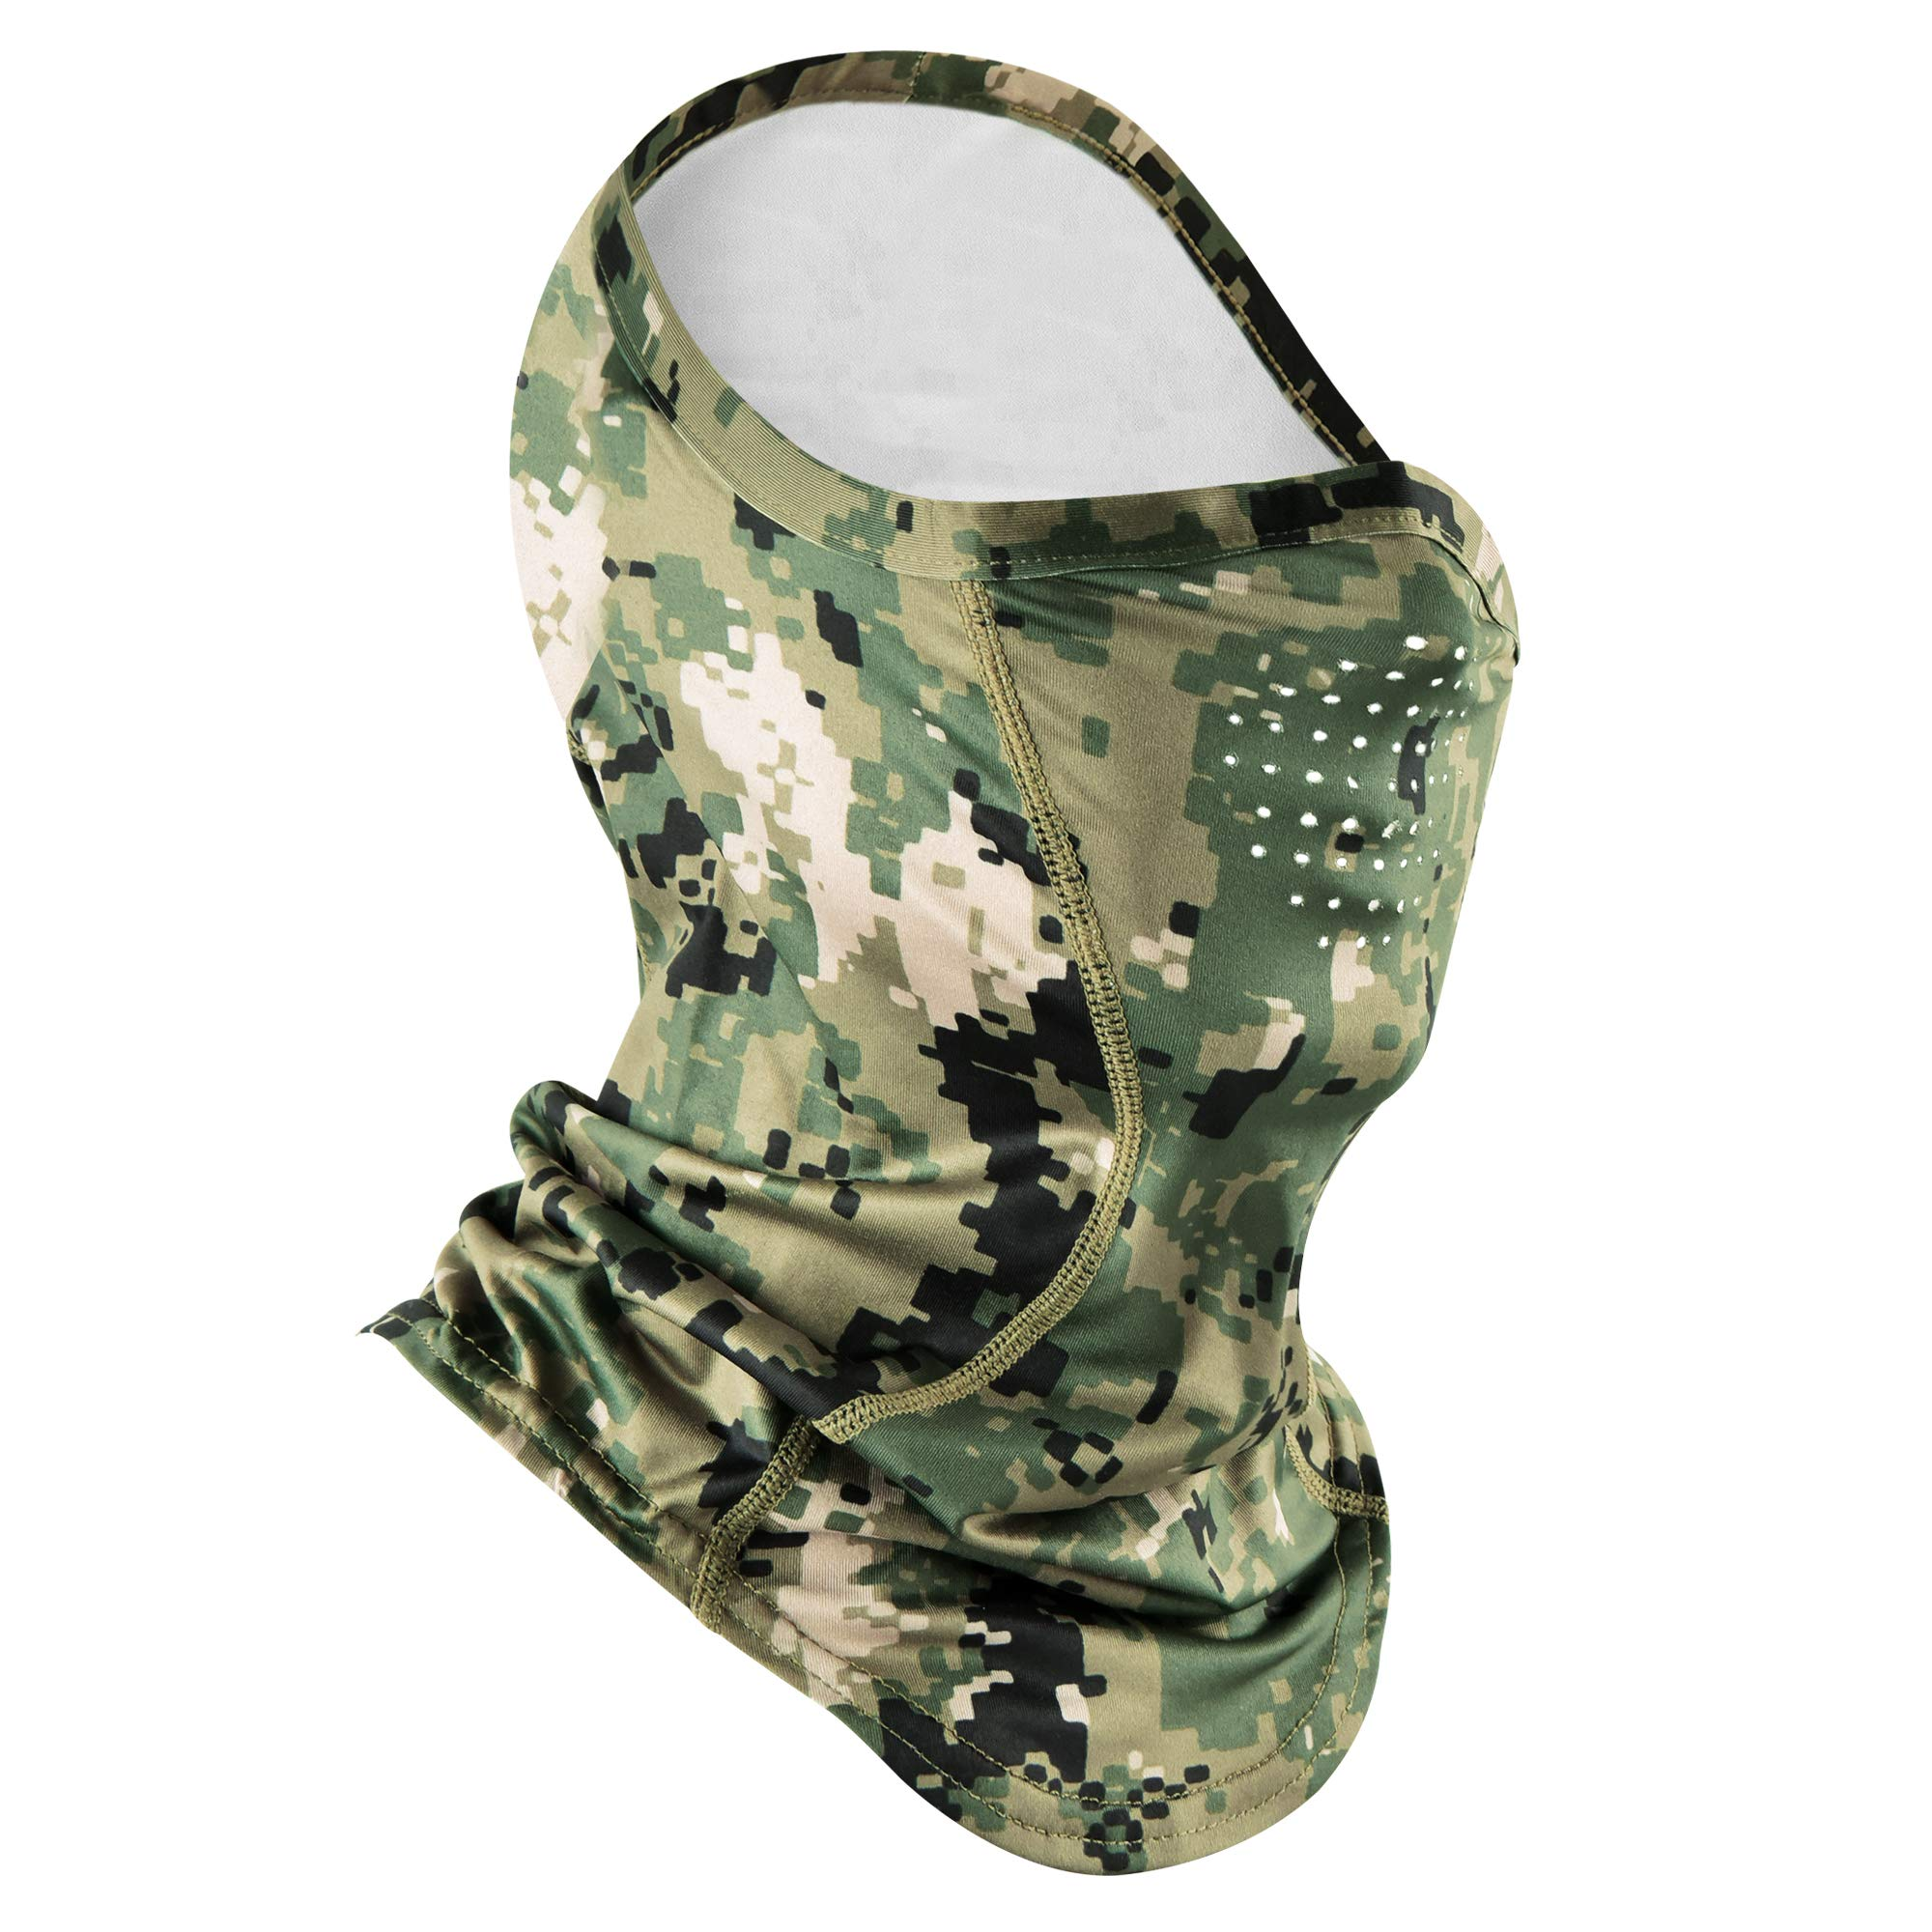 EXski Camo Gaiter Mask UPF 50 Half Balaclava Face Mask with Breathable Air Holes for Hunting Fishing Hiking